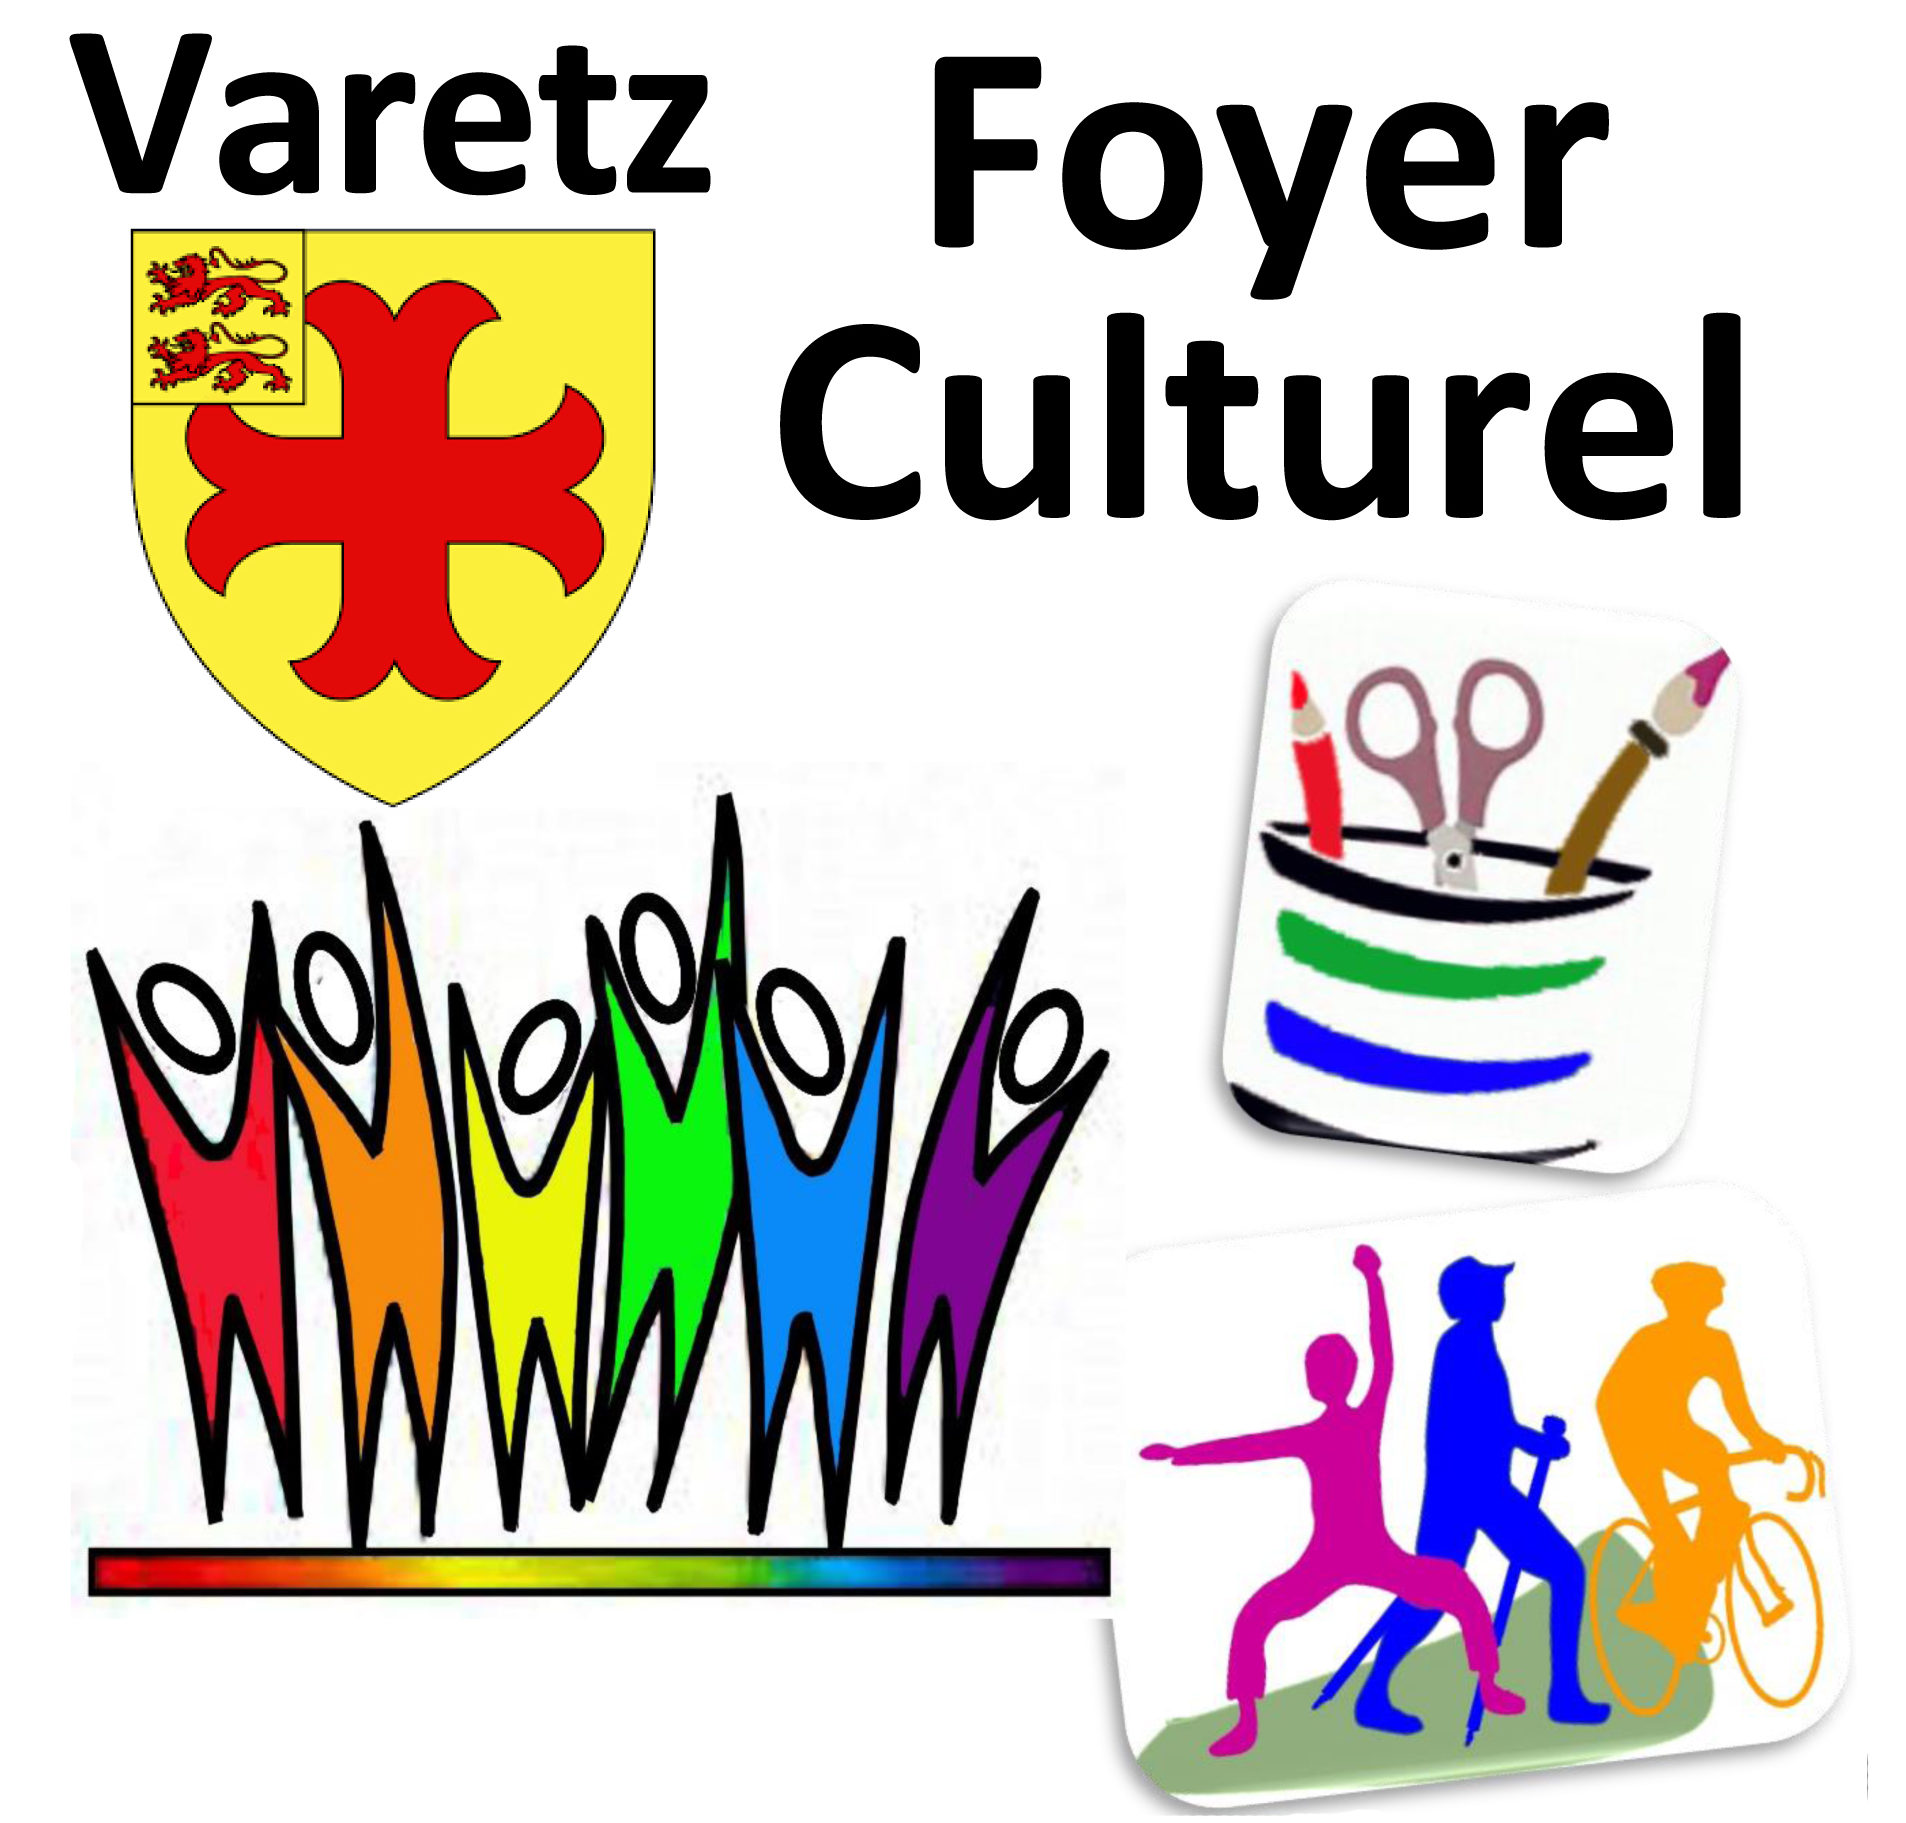 Foyer Culturel Varetz